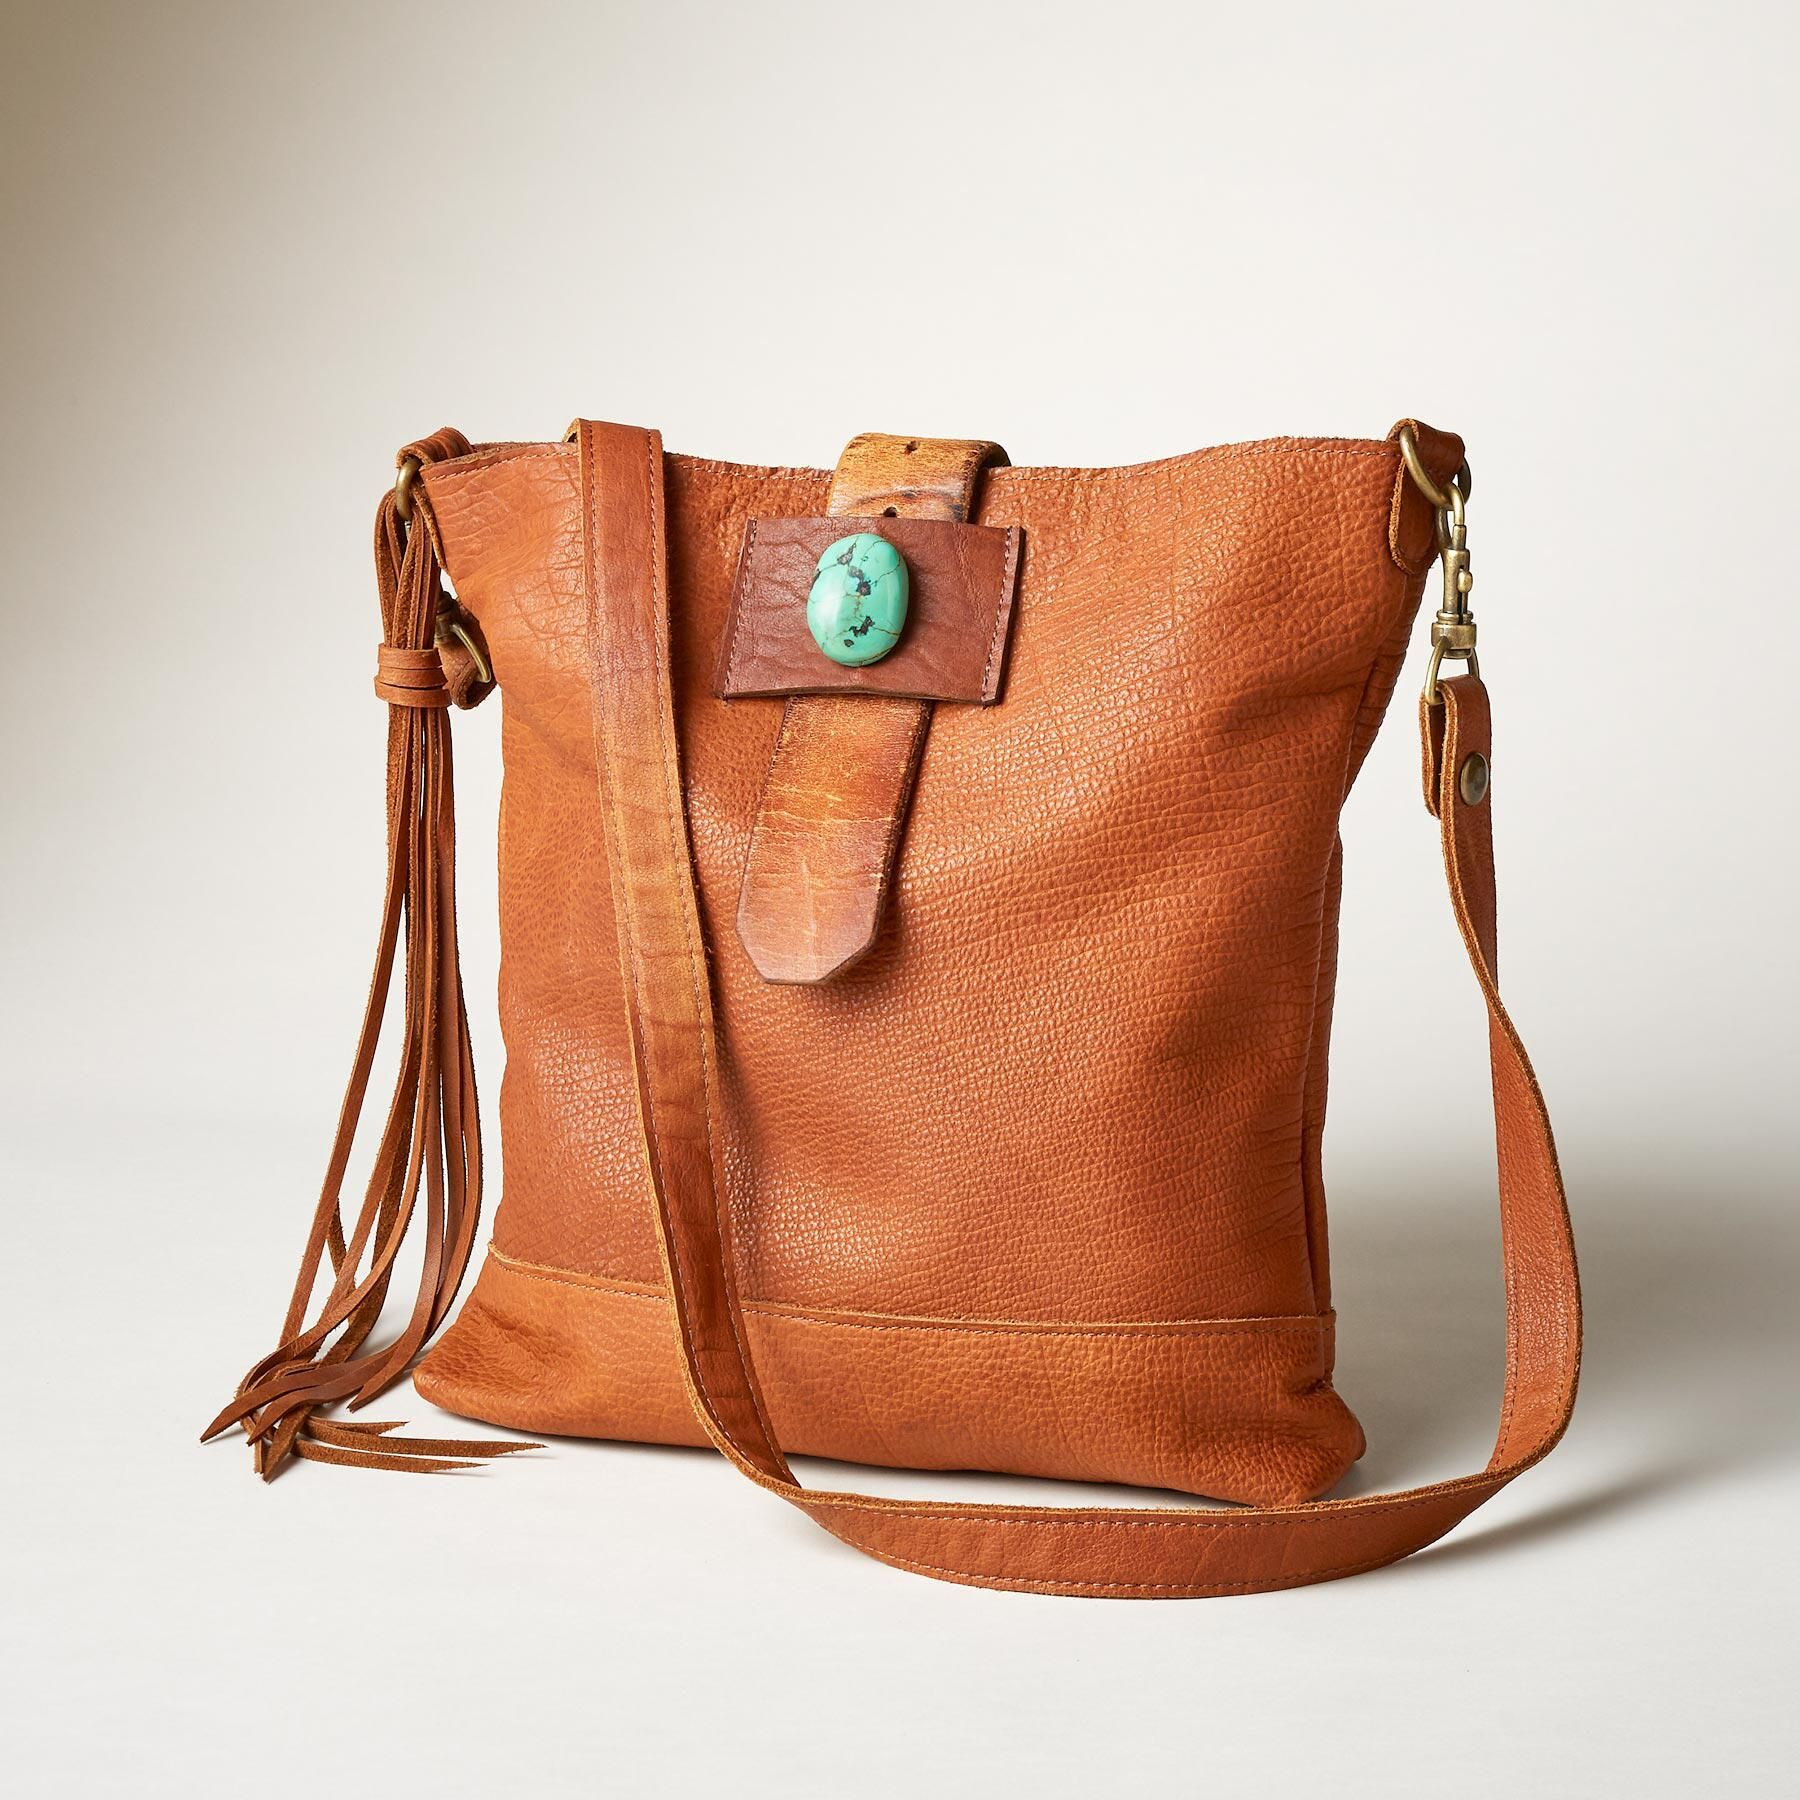 751ea887016 ALVARADO CROSSBODY Bag from Sundance Catalog -- Handmade in Texas using  time-honored traditions. This leather crossbody bag would go perfectly with  any boho ...